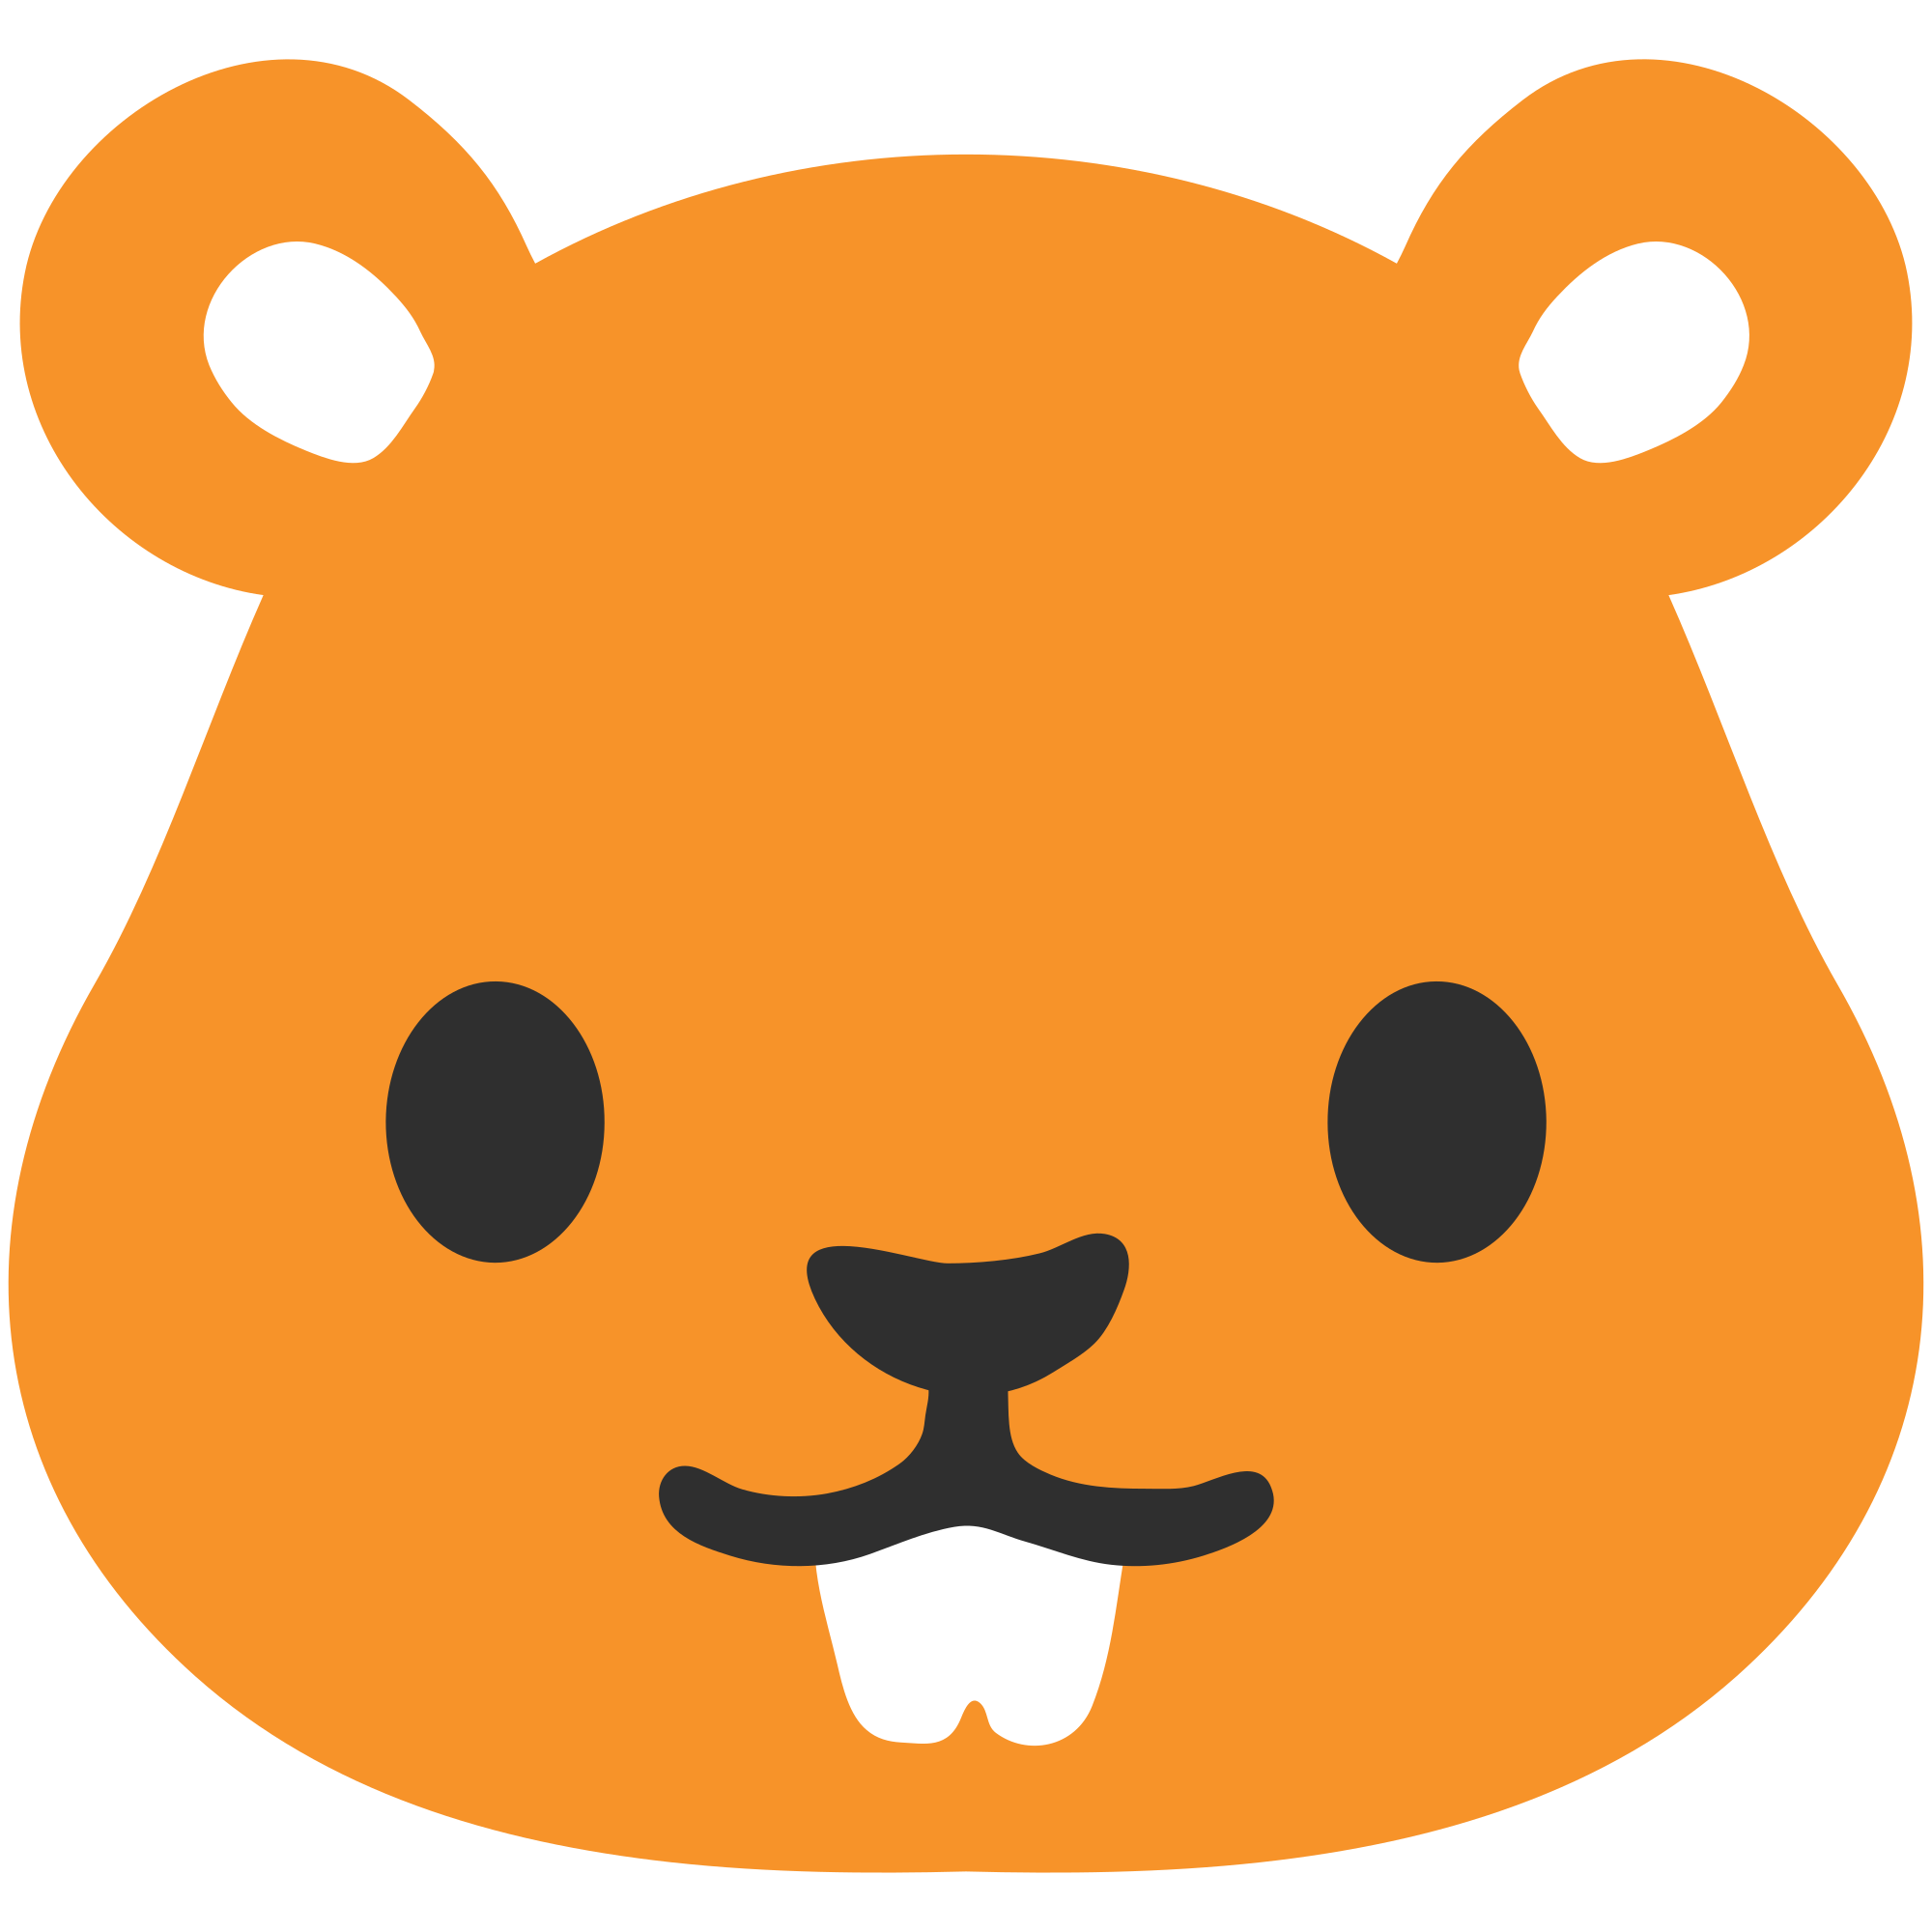 Hamster svg #12, Download drawings